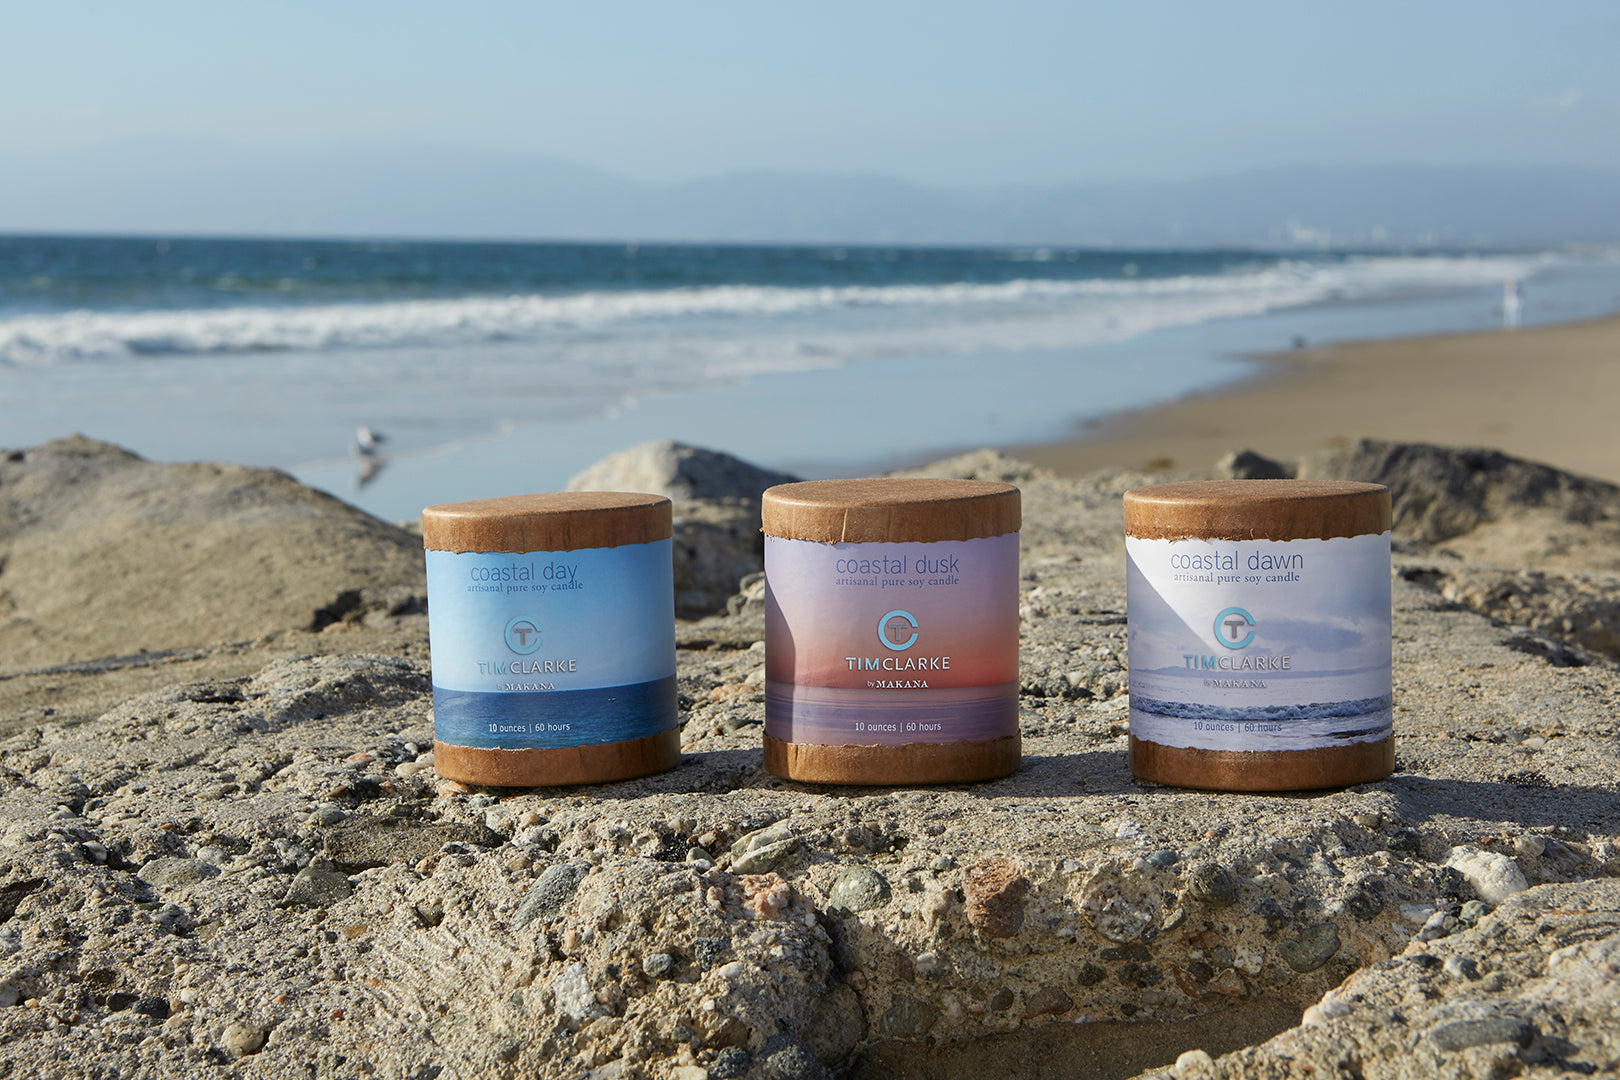 Coastal Dawn Soy Candle by Tim Clarke